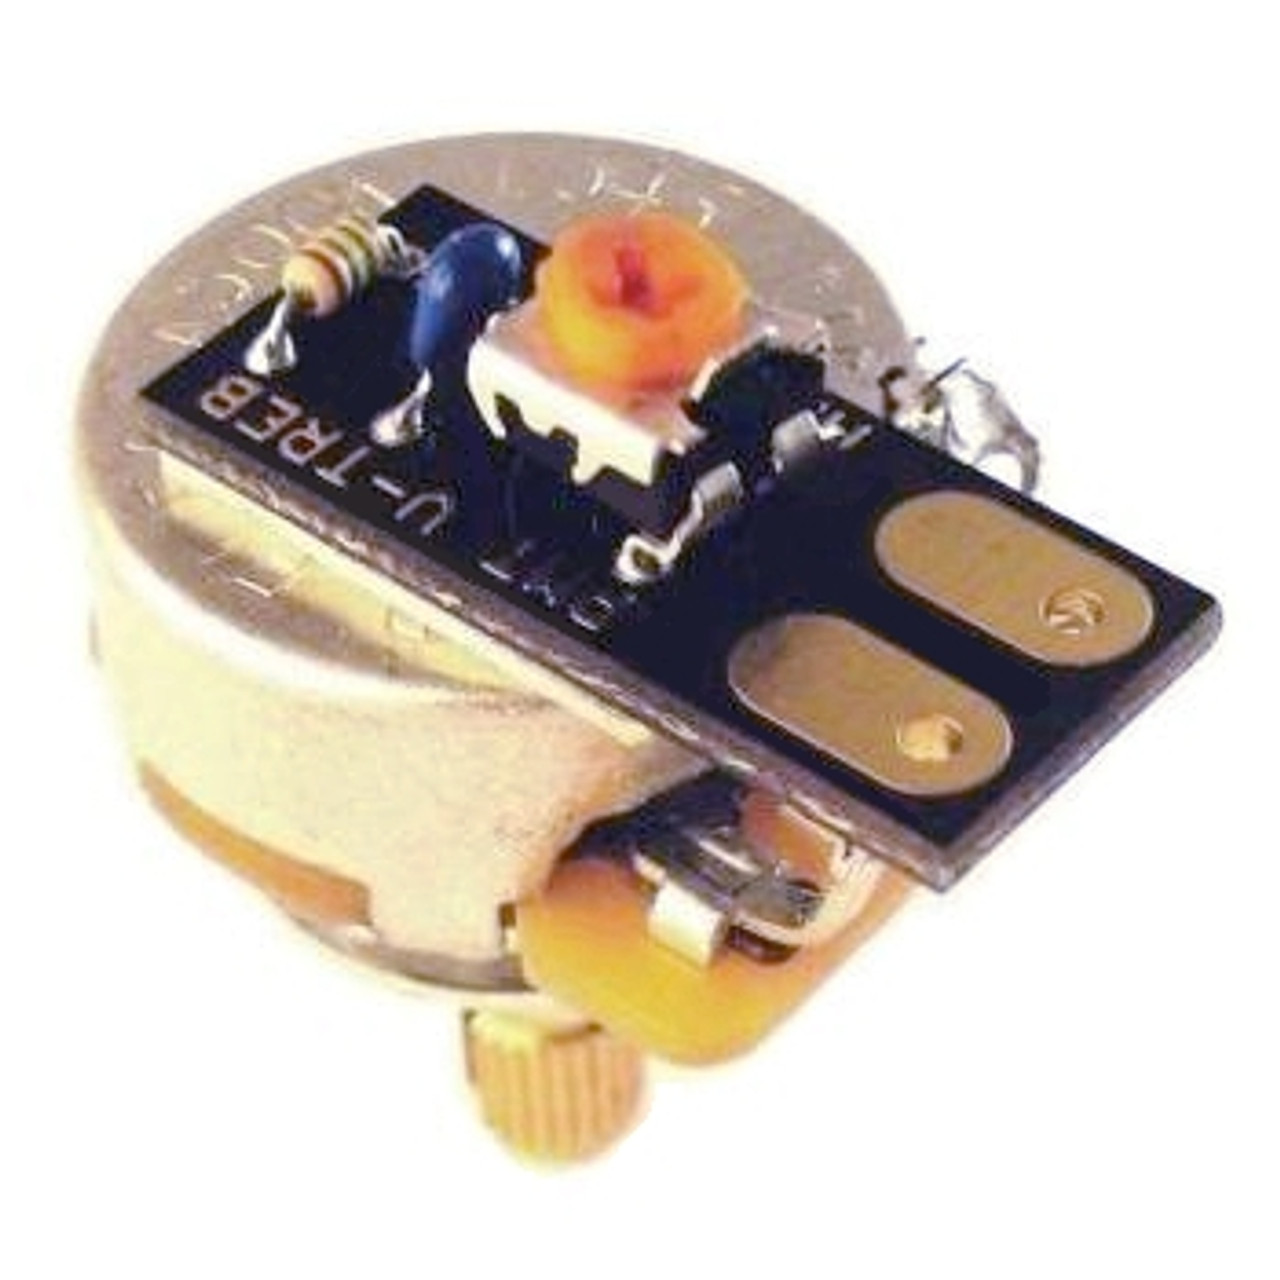 CTS 500K Pro Guitar Pot w/ Variable Treble Bleed Circuit